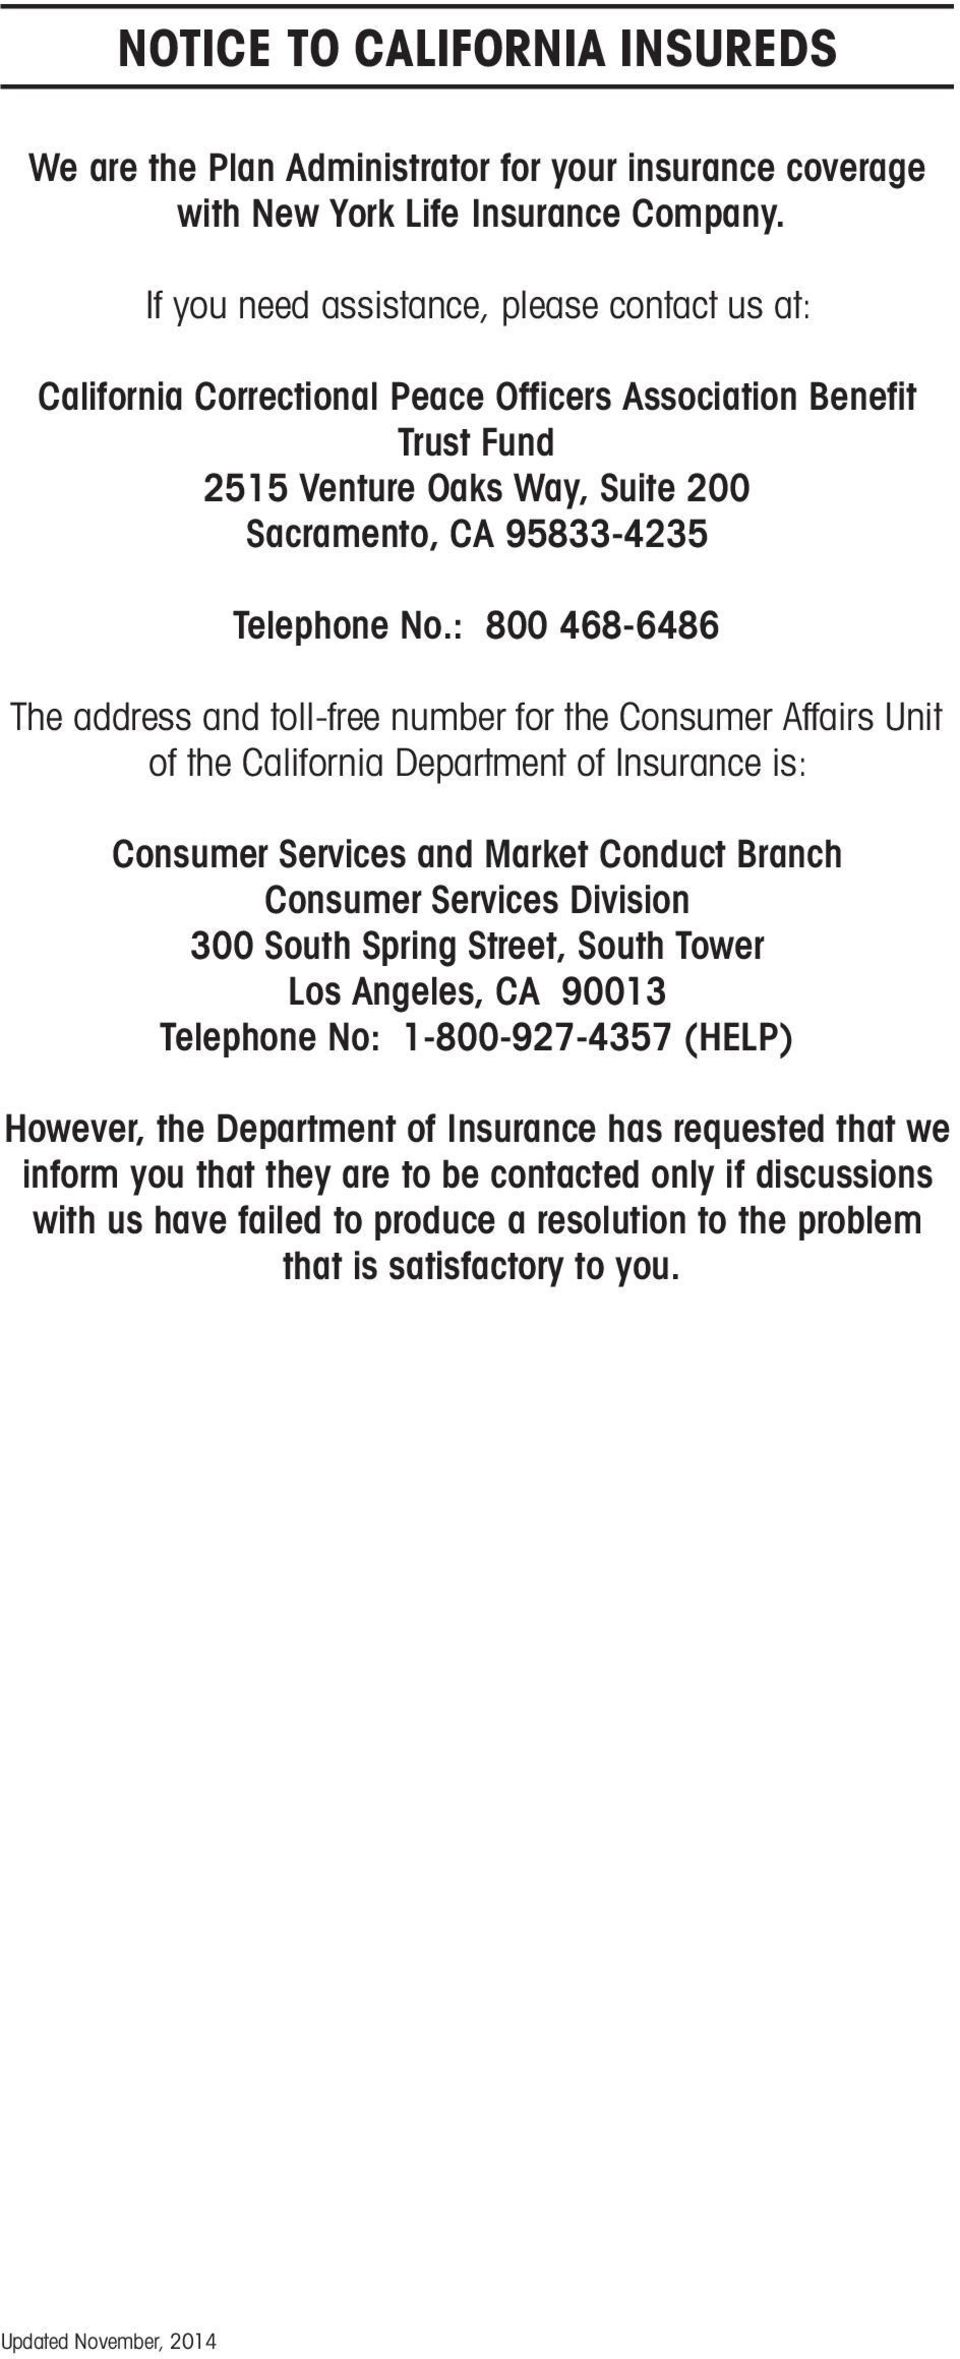 : 800 468-6486 The address and toll-free number for the Consumer Affairs Unit of the California Department of Insurance is: Consumer Services and Market Conduct Branch Consumer Services Division 300